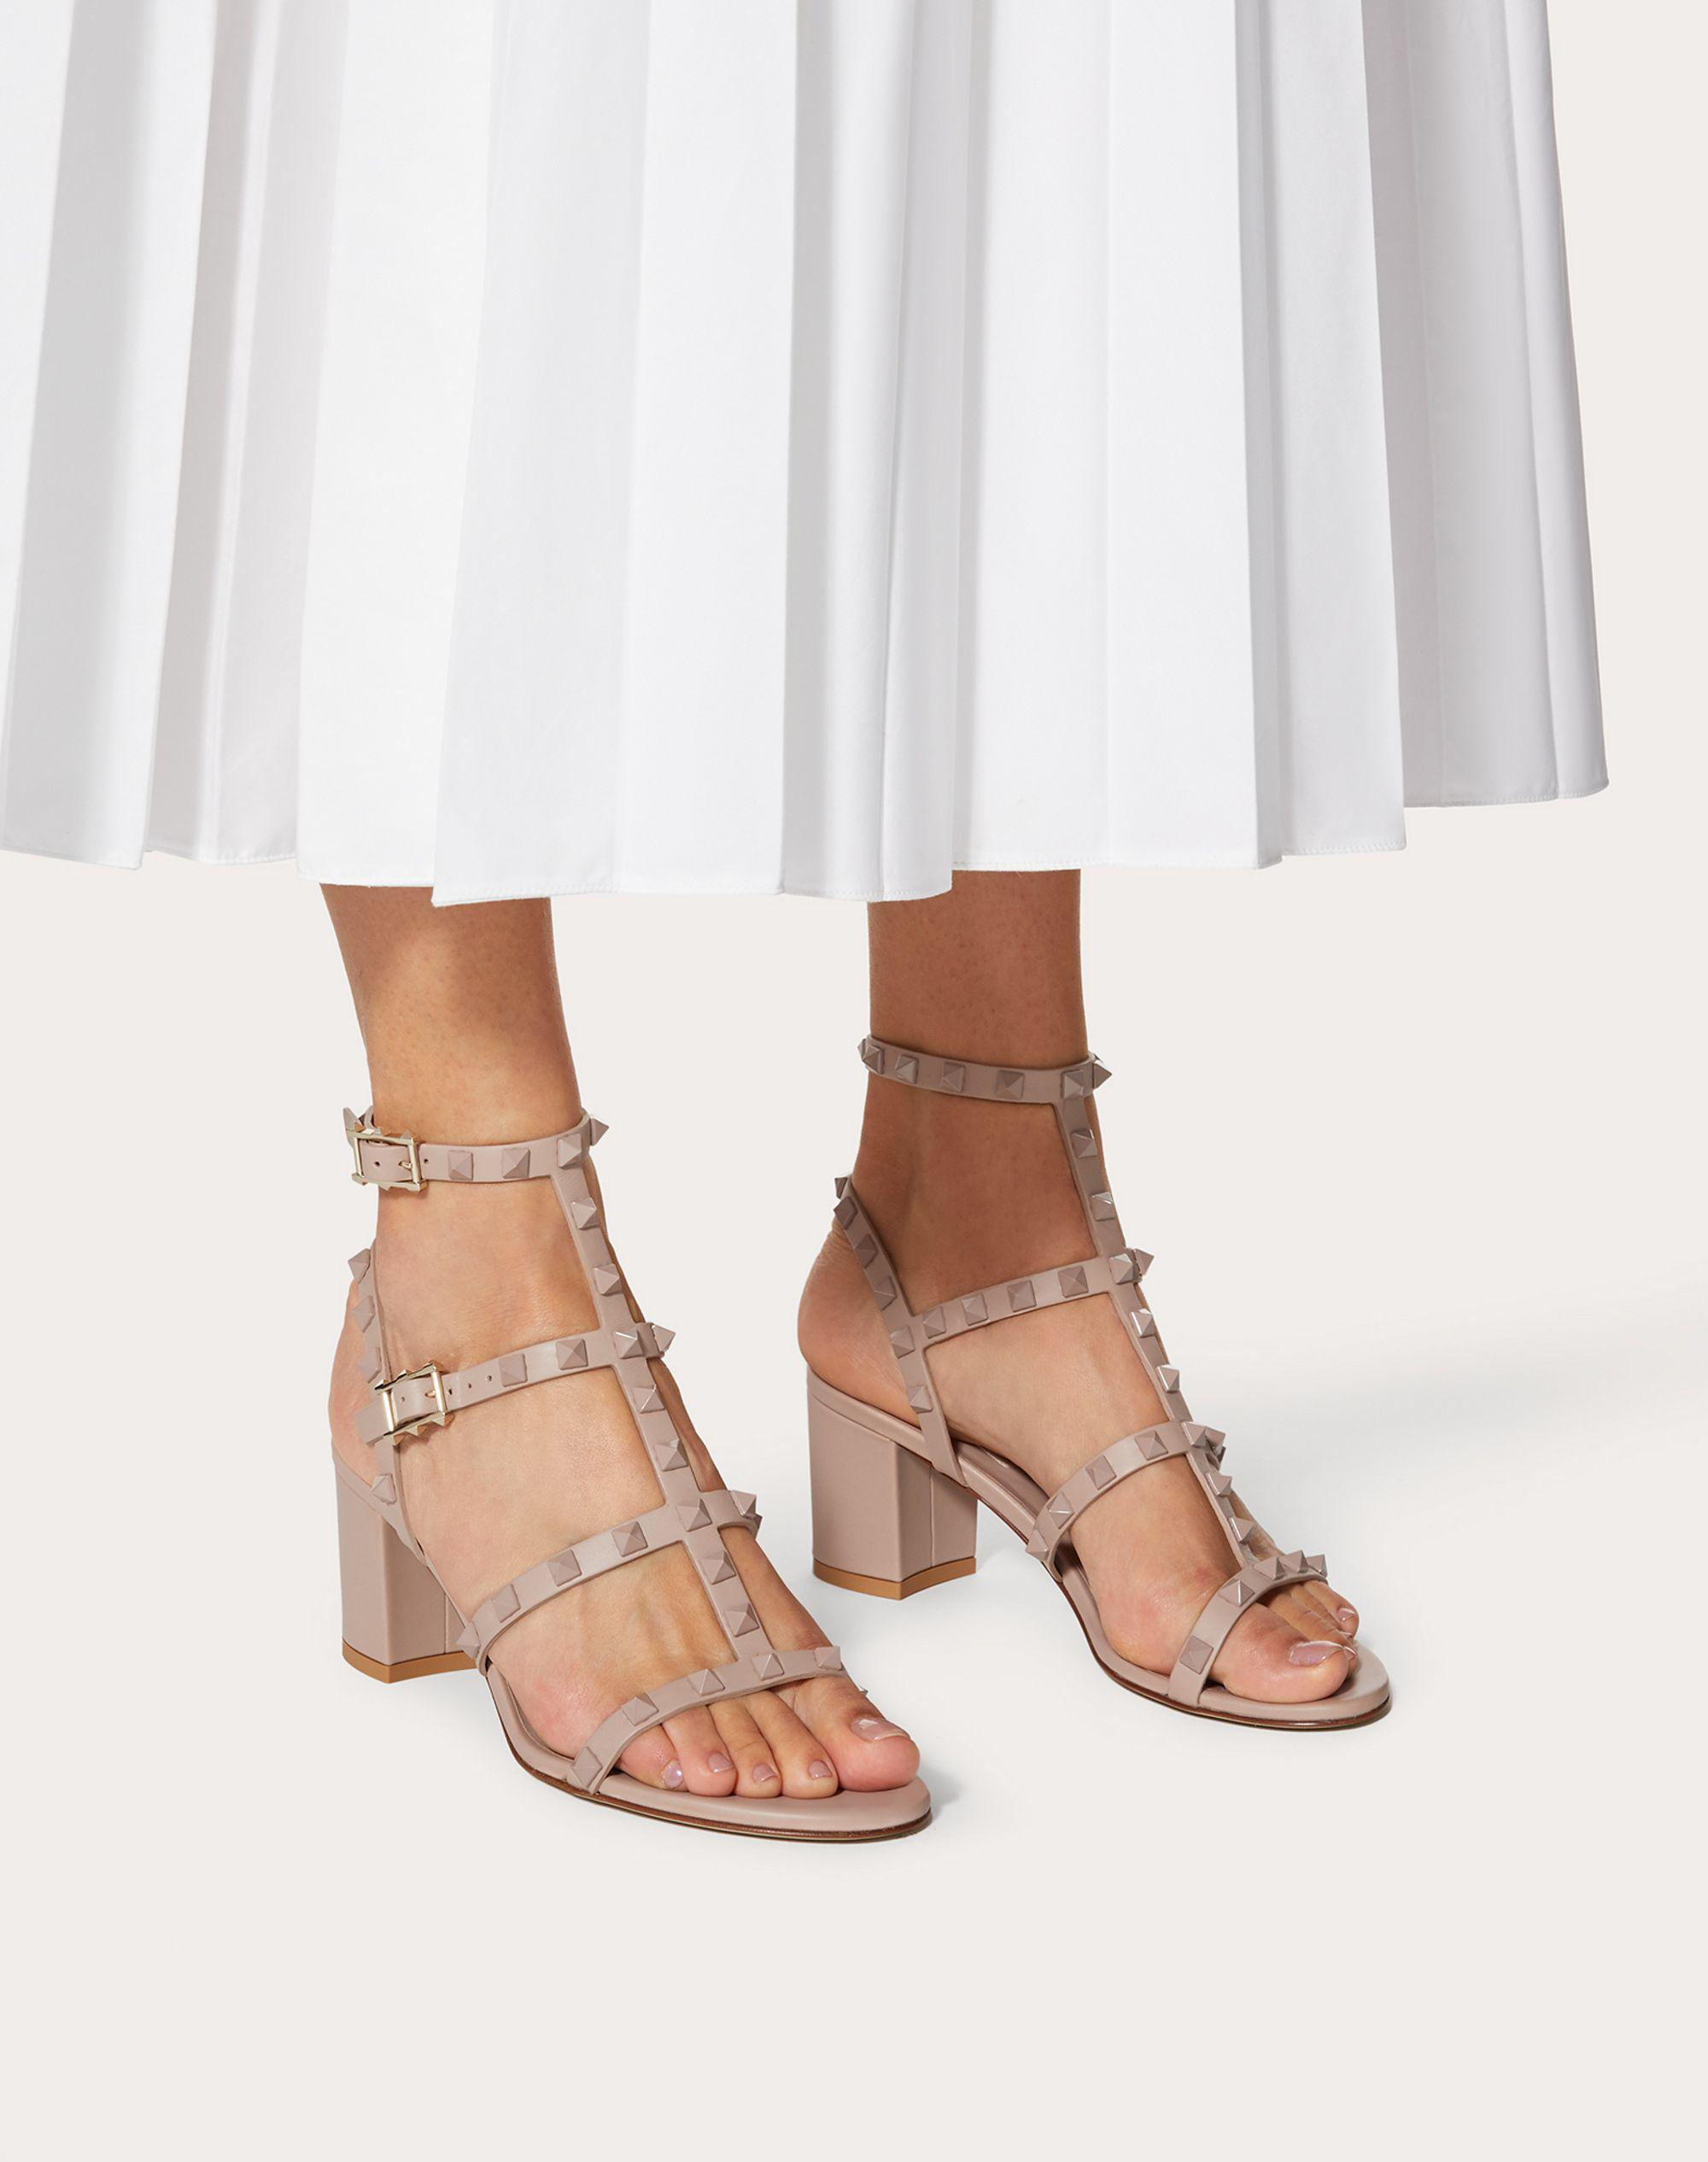 Rockstud Ankle Strap Calfskin Leather Sandal with Tonal Studs 60 mm 5